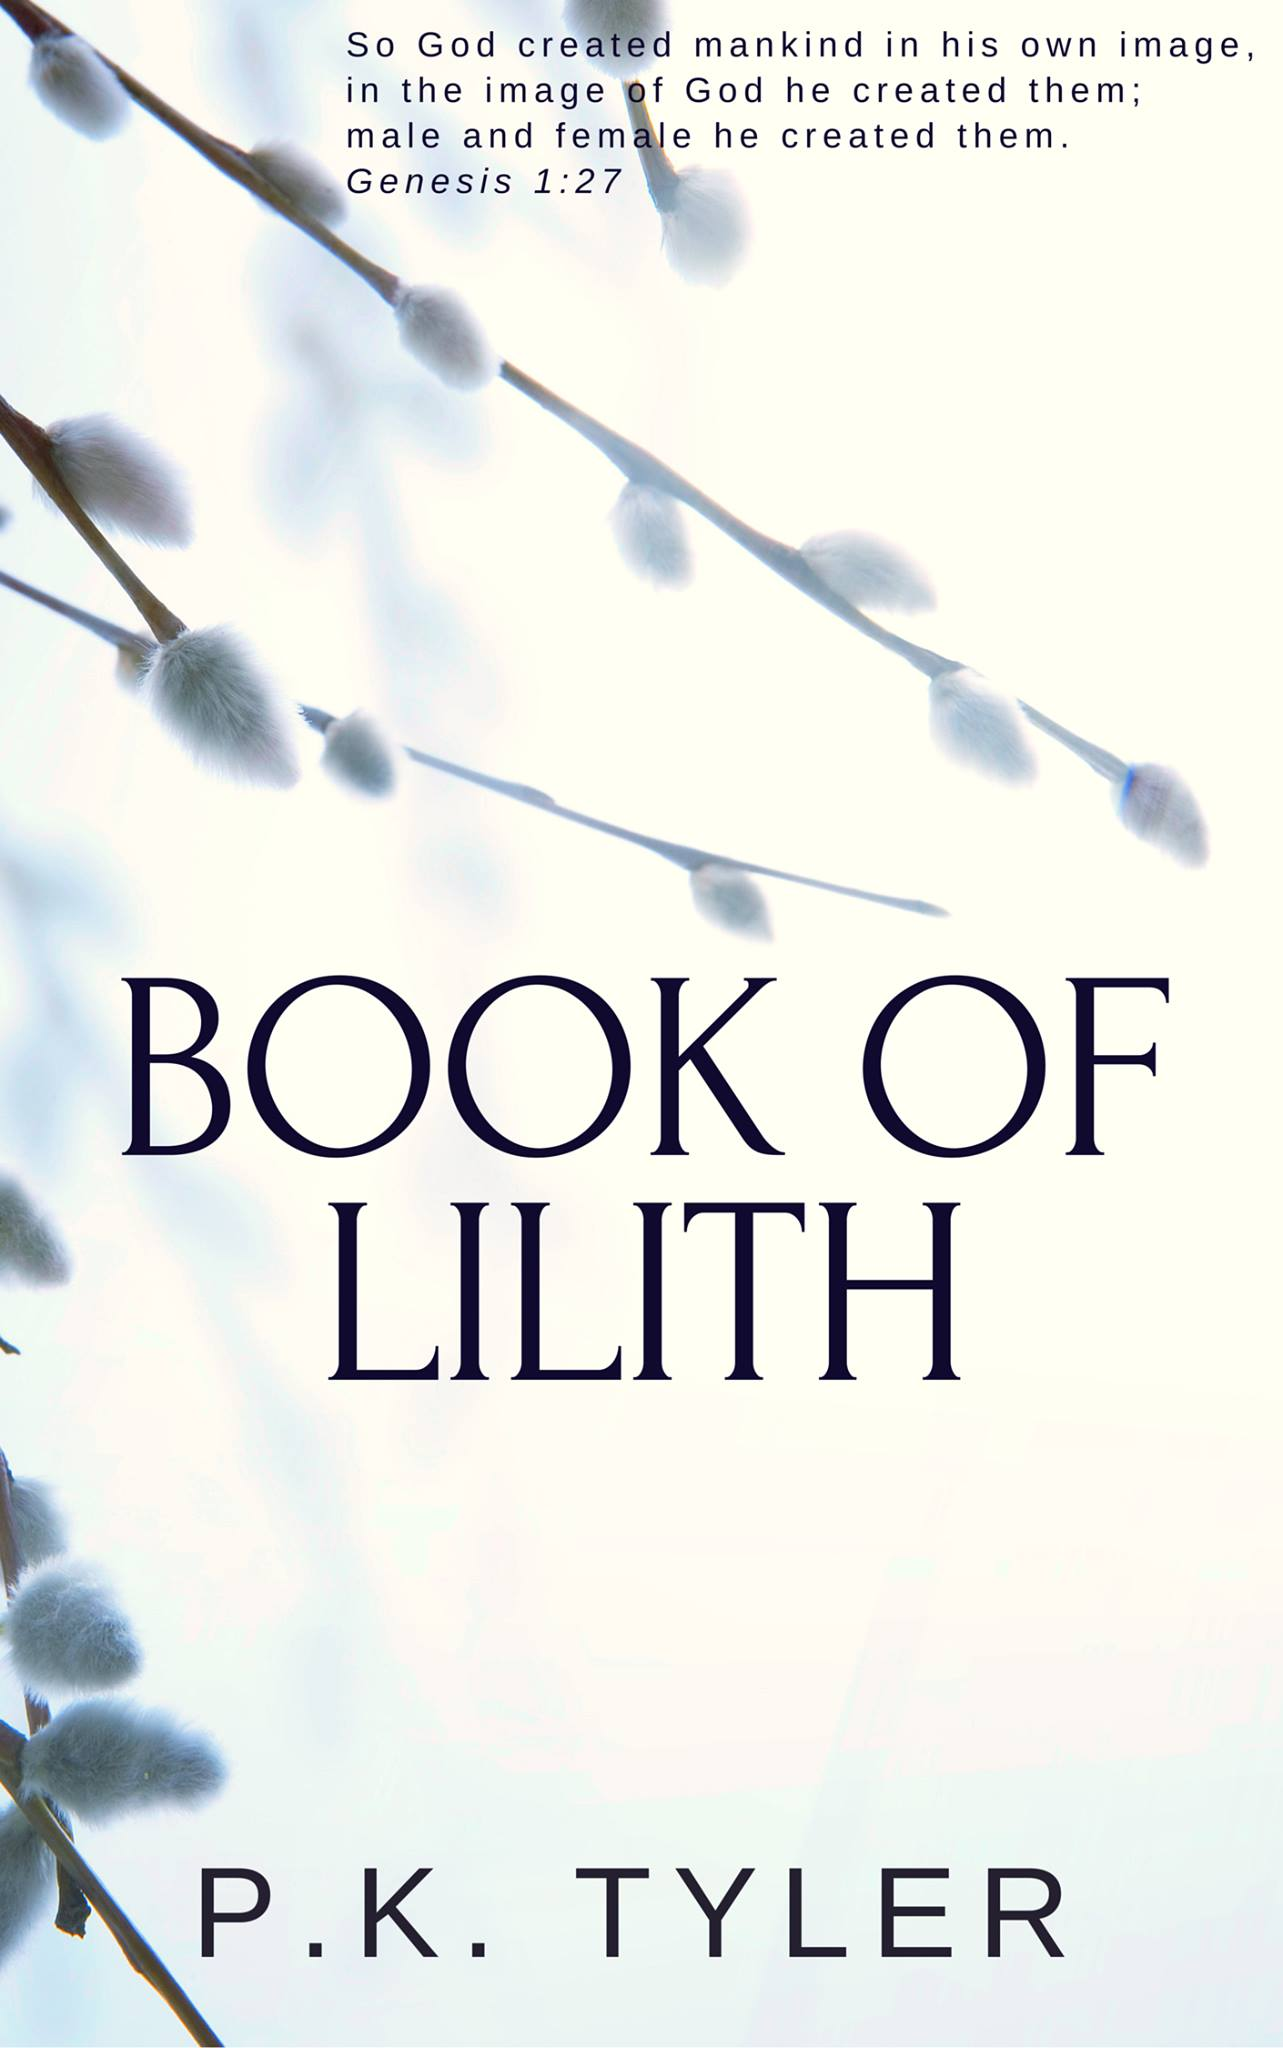 Book of Lilith by P.K. Tyler